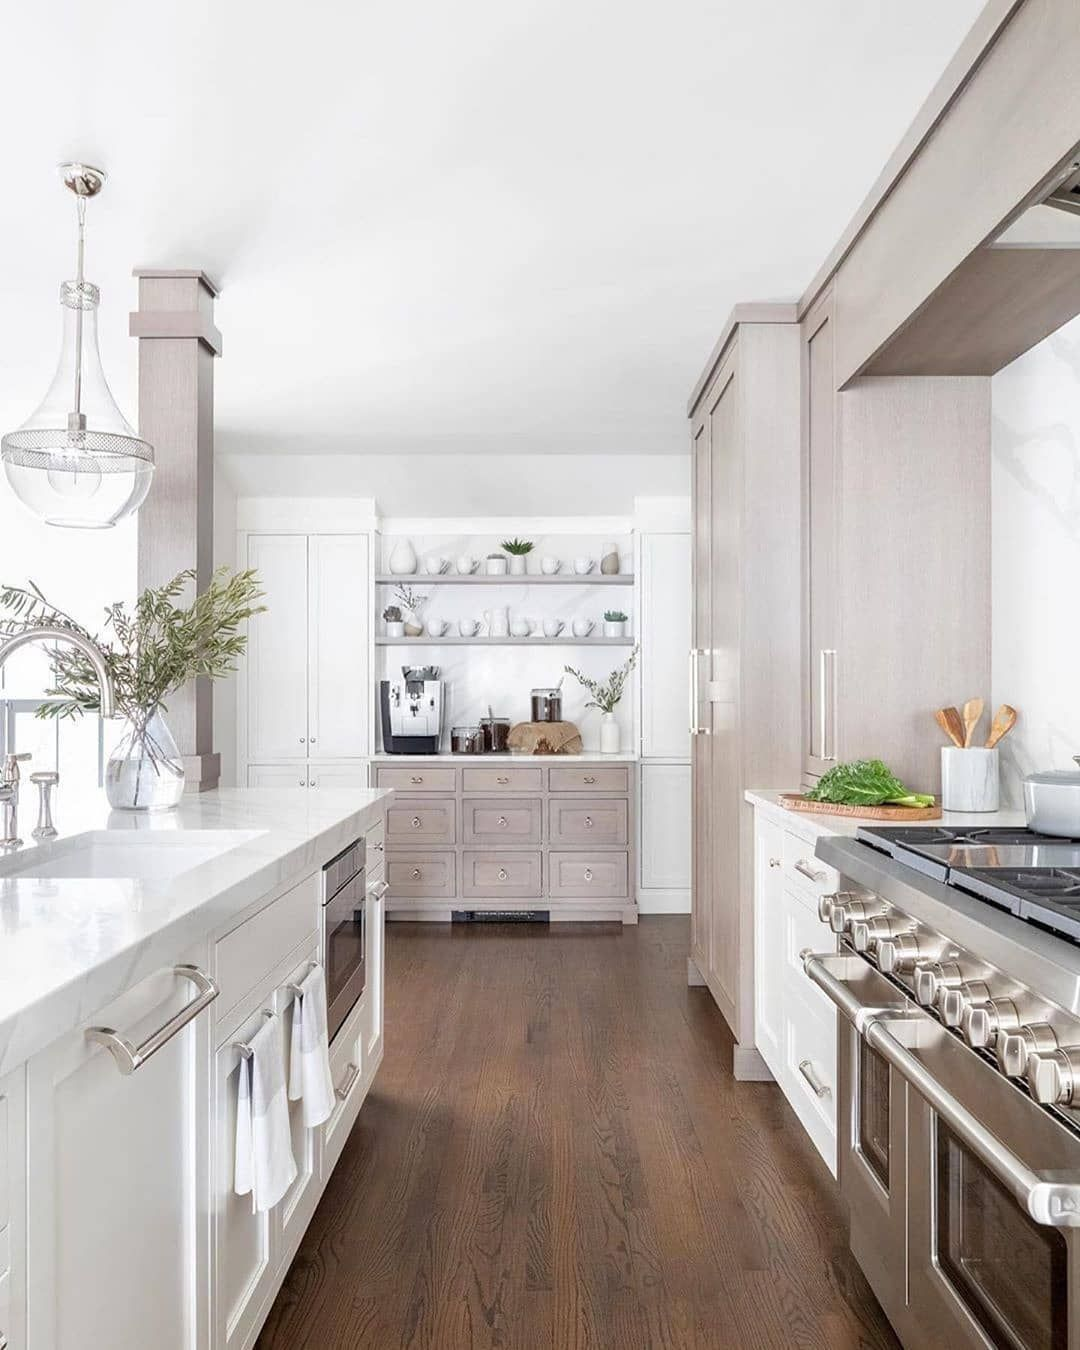 Hudsonvalleylighting S Hagen Pendant Is A Lovely Accessory In Jkinteriorliving S Bright And Airy Kitchen Its B Grey Kitchen Walls Brown Kitchens Home Decor